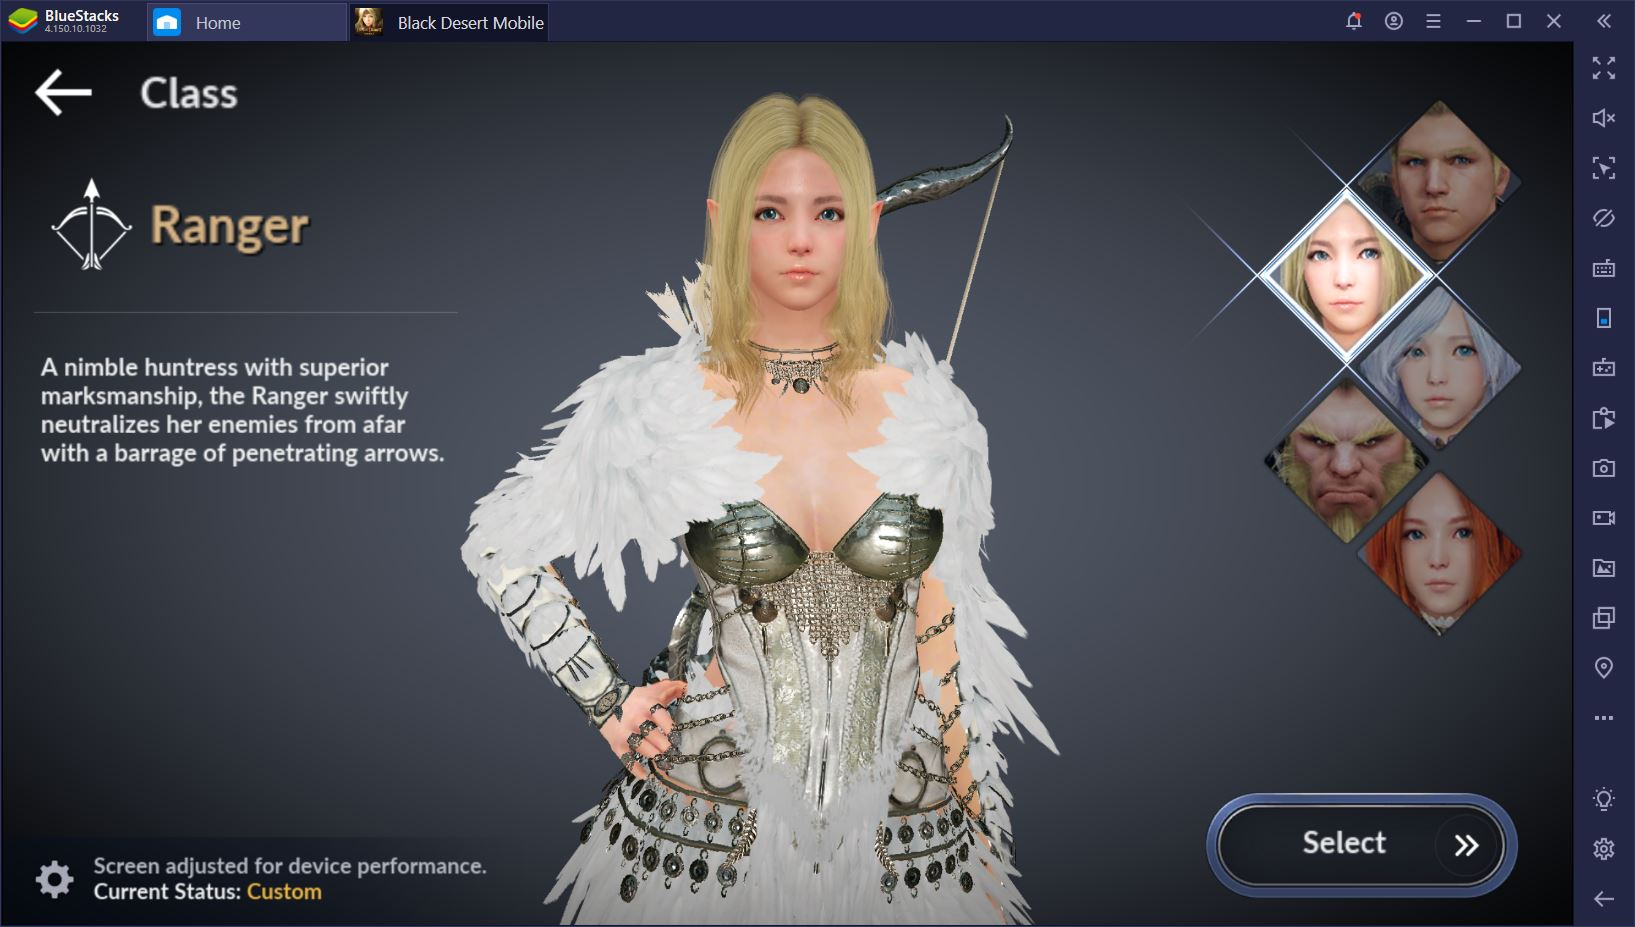 Black Desert Mobile on PC: Which Class Should You Pick?